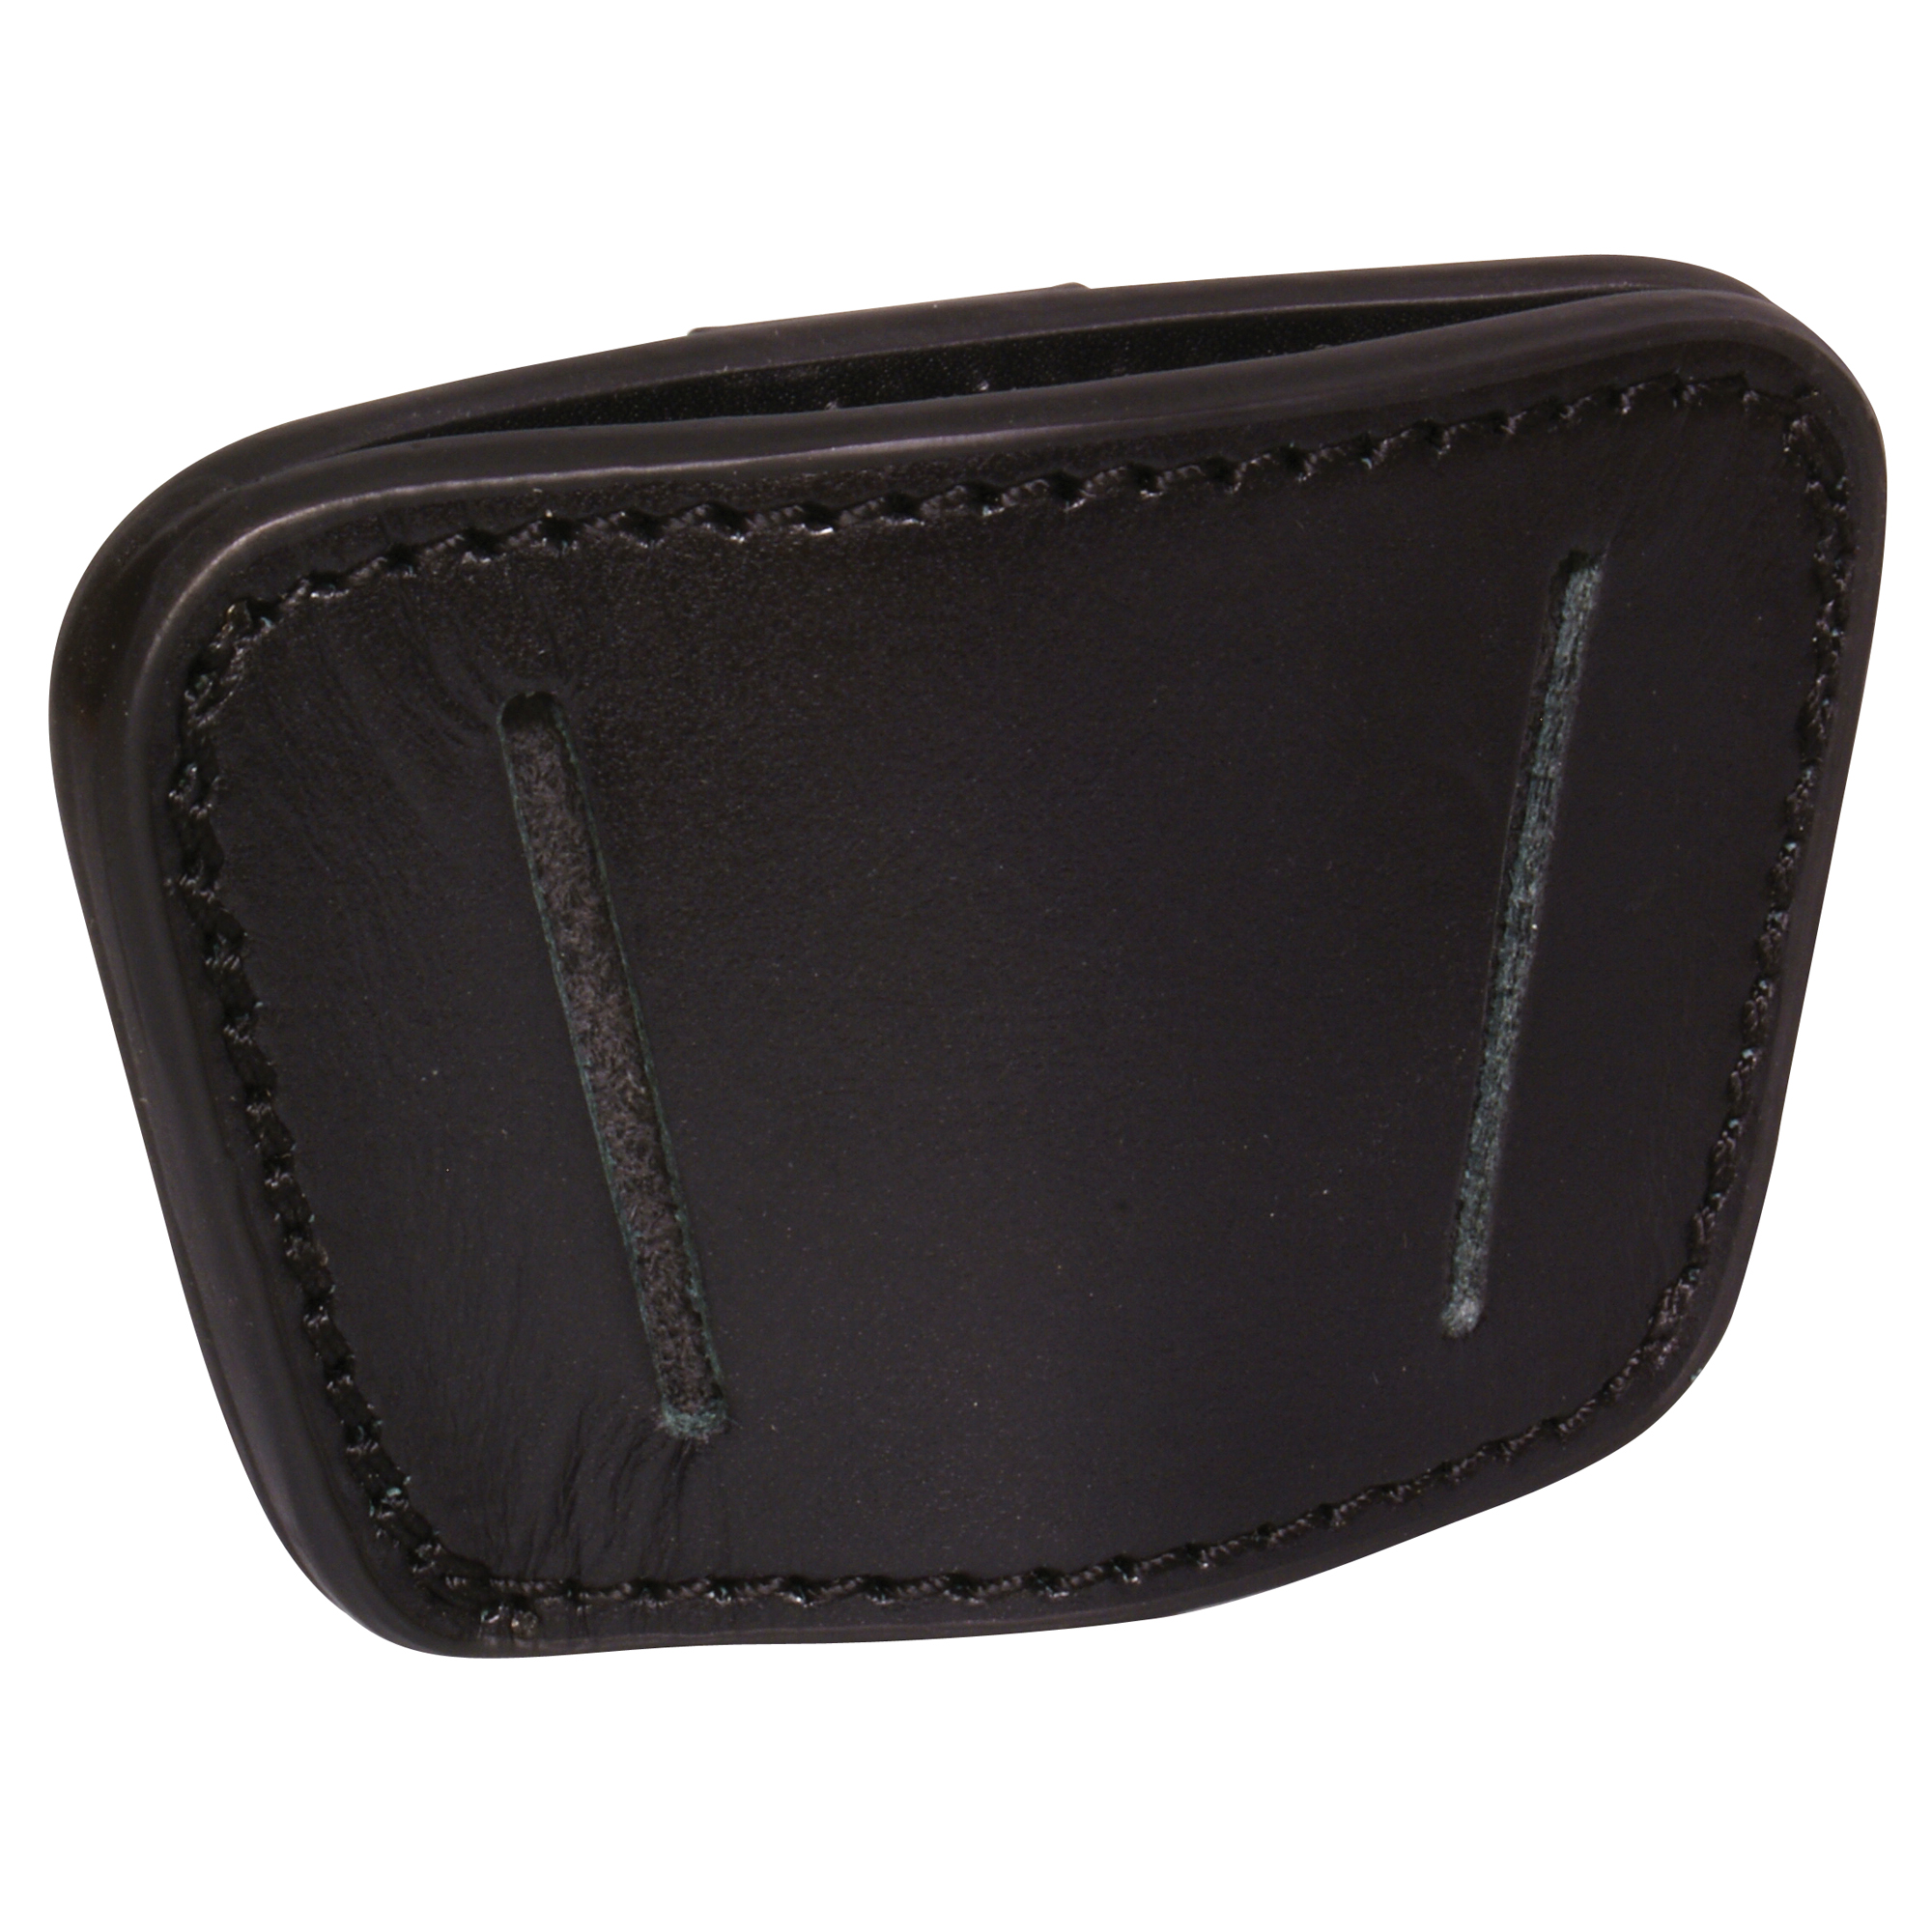 """Black Ambidextrous belt slide holster in genuine high-grade leather. Fits medium to large frame autos handguns: Glock"""" Sig"""" Beretta"""" S&W Autos - 9mm. 45 Autos and 1911. Slots to fit up to 1-3/4 inch belt with removable clip for wearing inside or outside waistband right or left or in the small of your back. Comes with belt loops and a removable clip."""